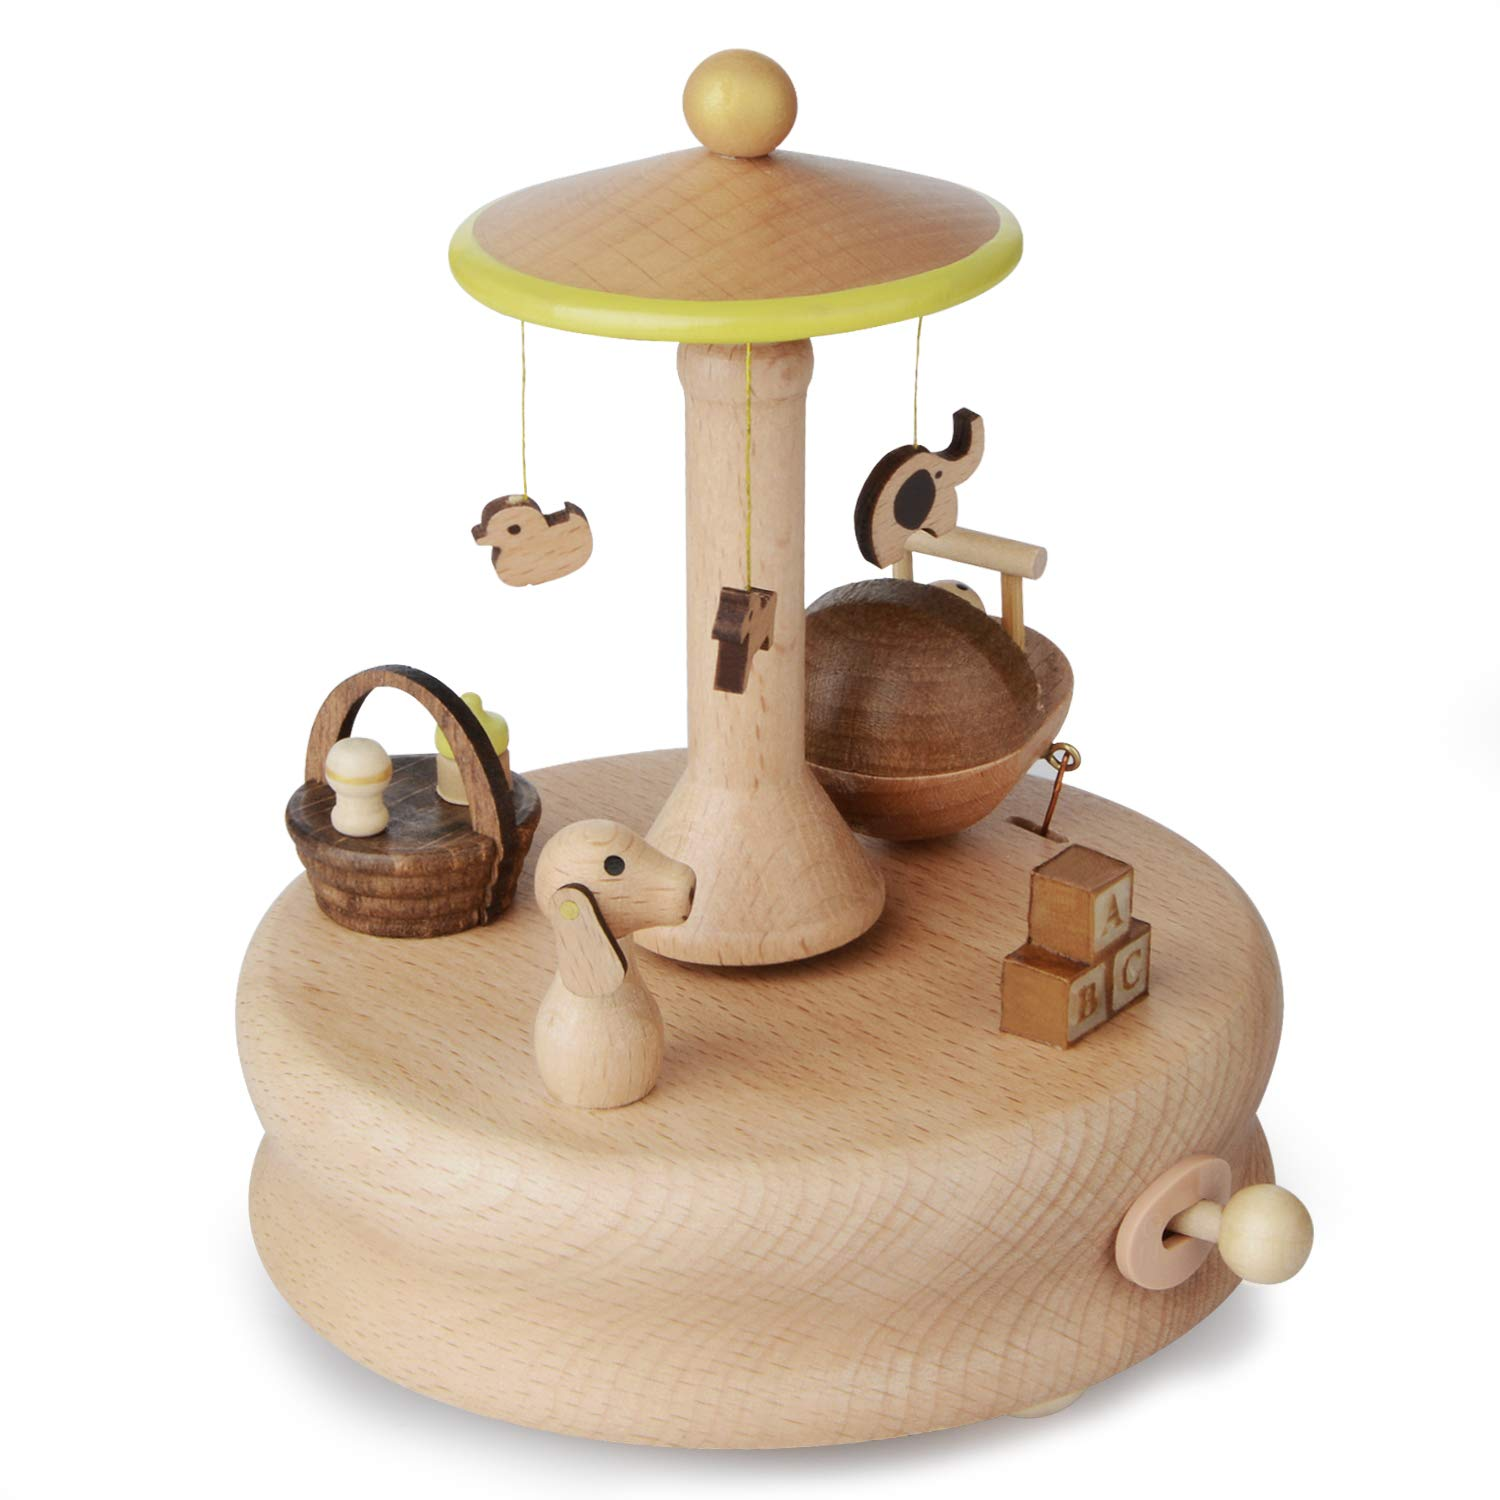 Takefuns Wooden Music Box, Musical Box Smart Castle Toy Decoration Birthday Present for Lover Friends and Children Plays Castle in The Sky Song